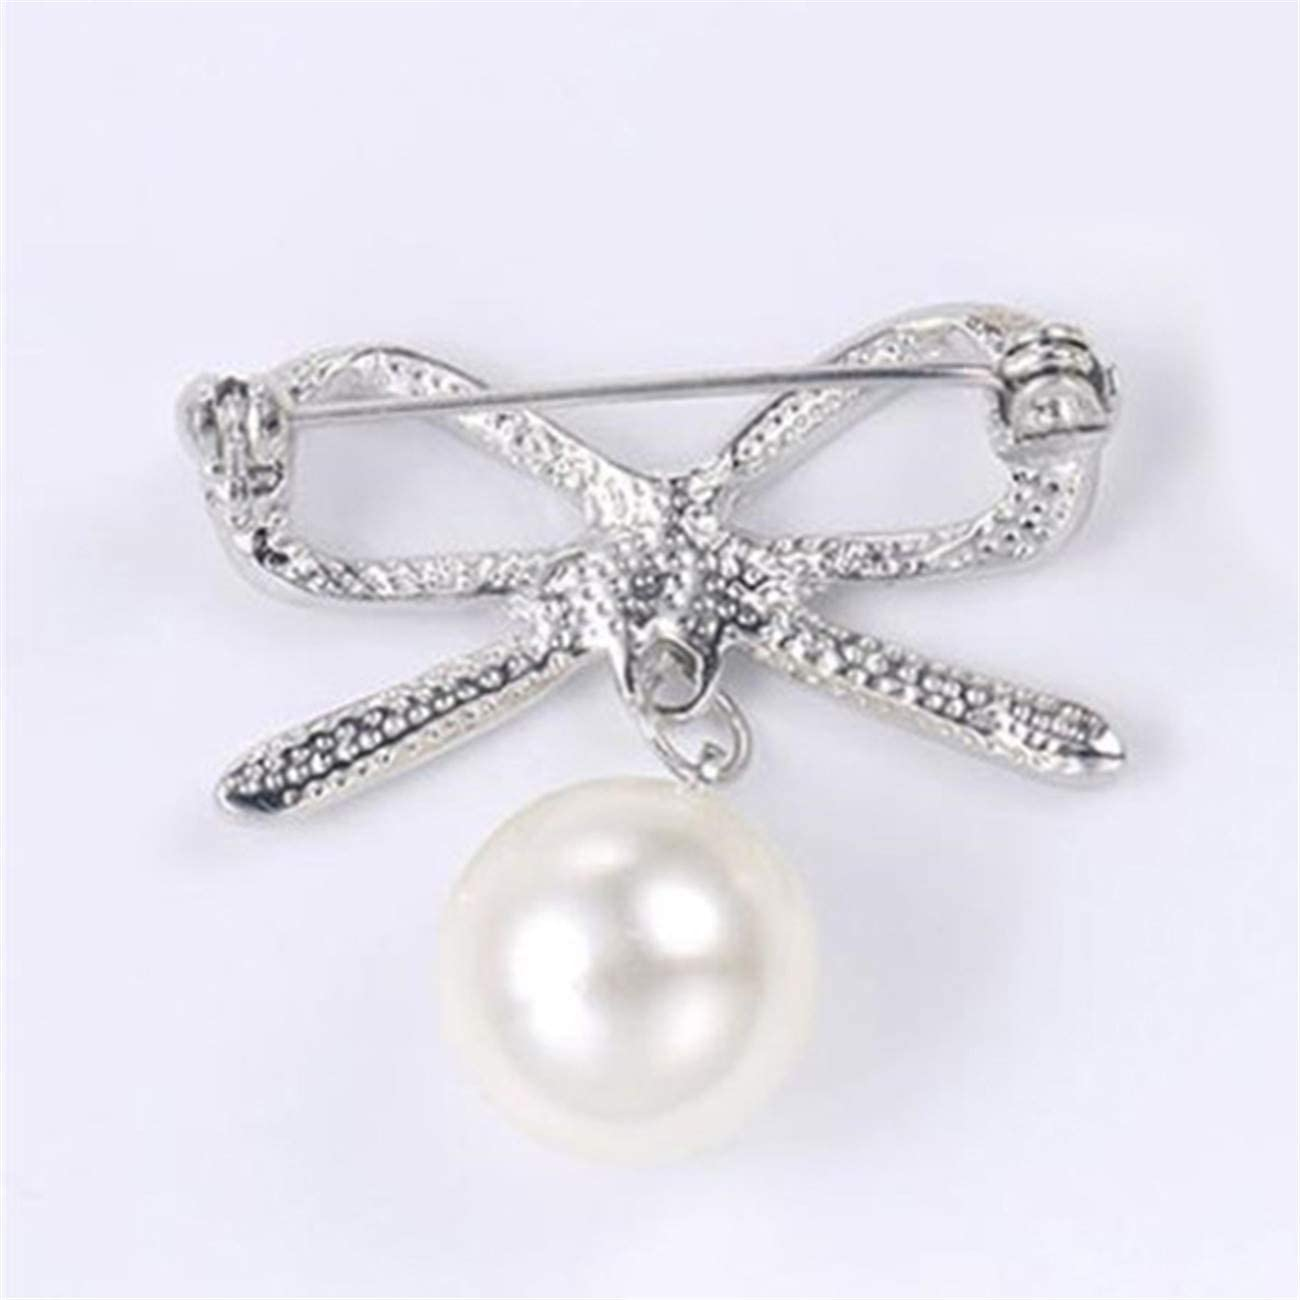 ZALING Women Bow Brooches Imitation Pearl Simple Bowknot Clip Pin Bow-Knot Brooch Pins Accessories for Banquet